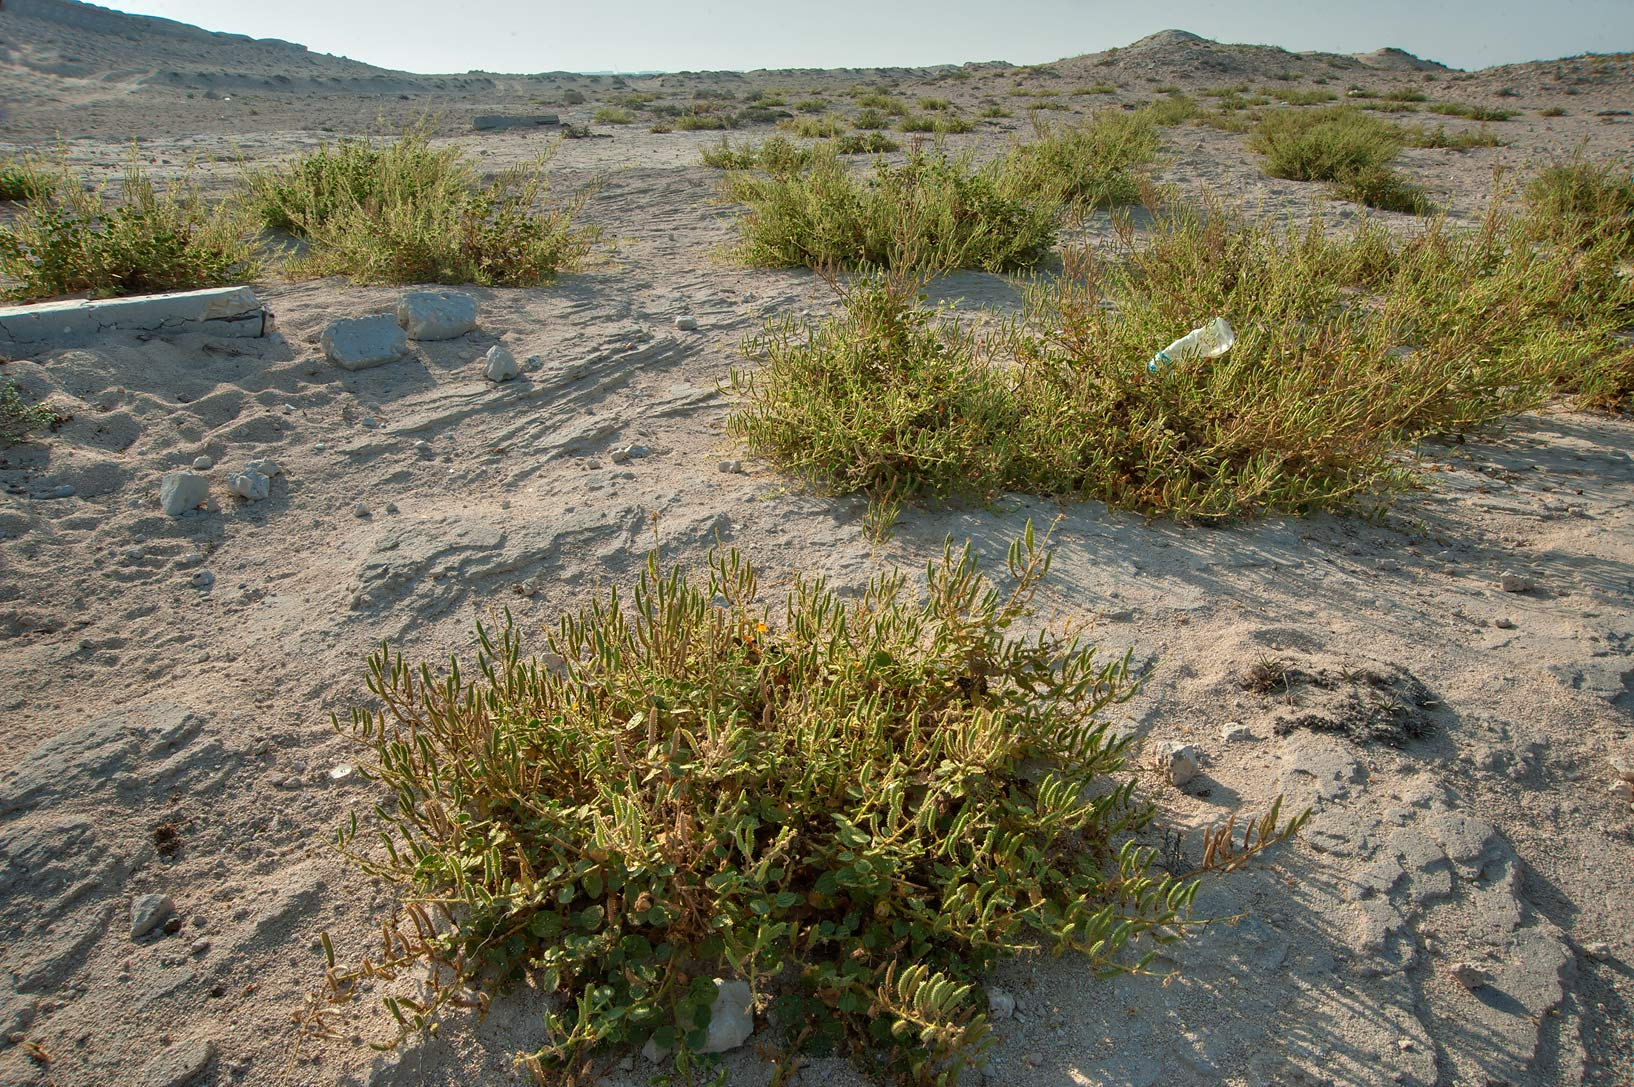 Plants of Cleome noeana growing on rocky terrain near Fuwairit. Northern Qatar